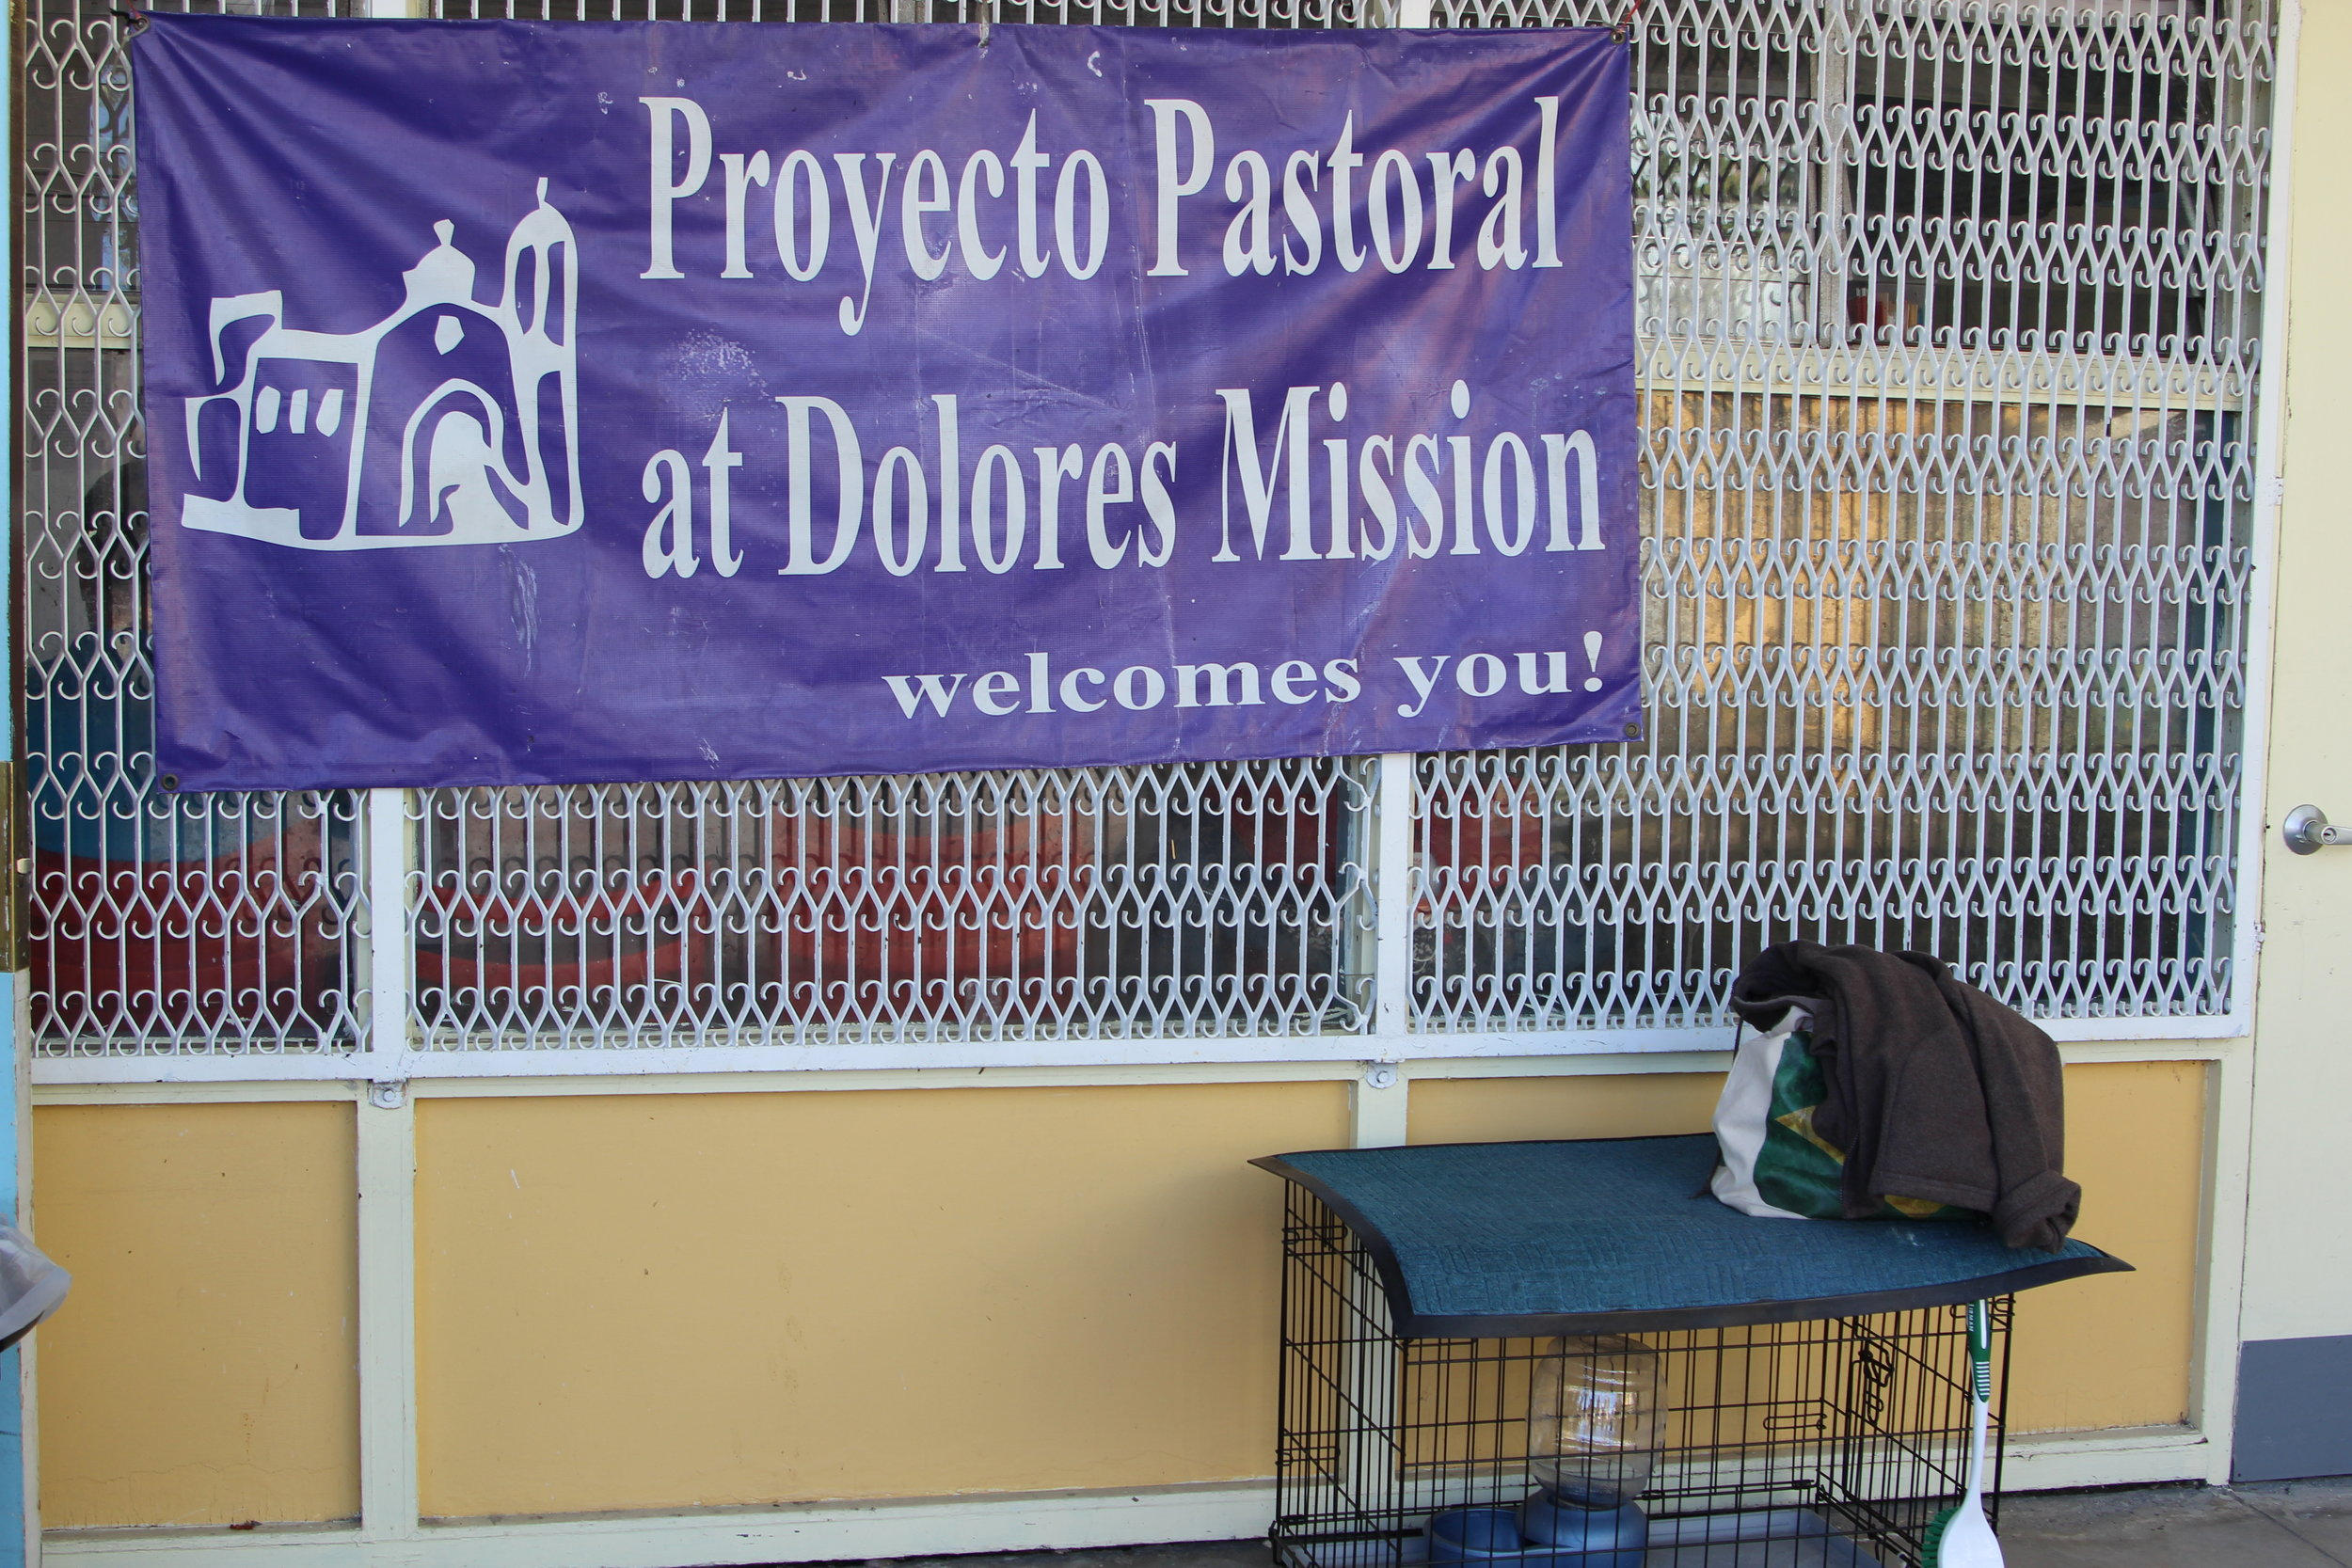 Outside the Proyecto Pastoral women's shelter.